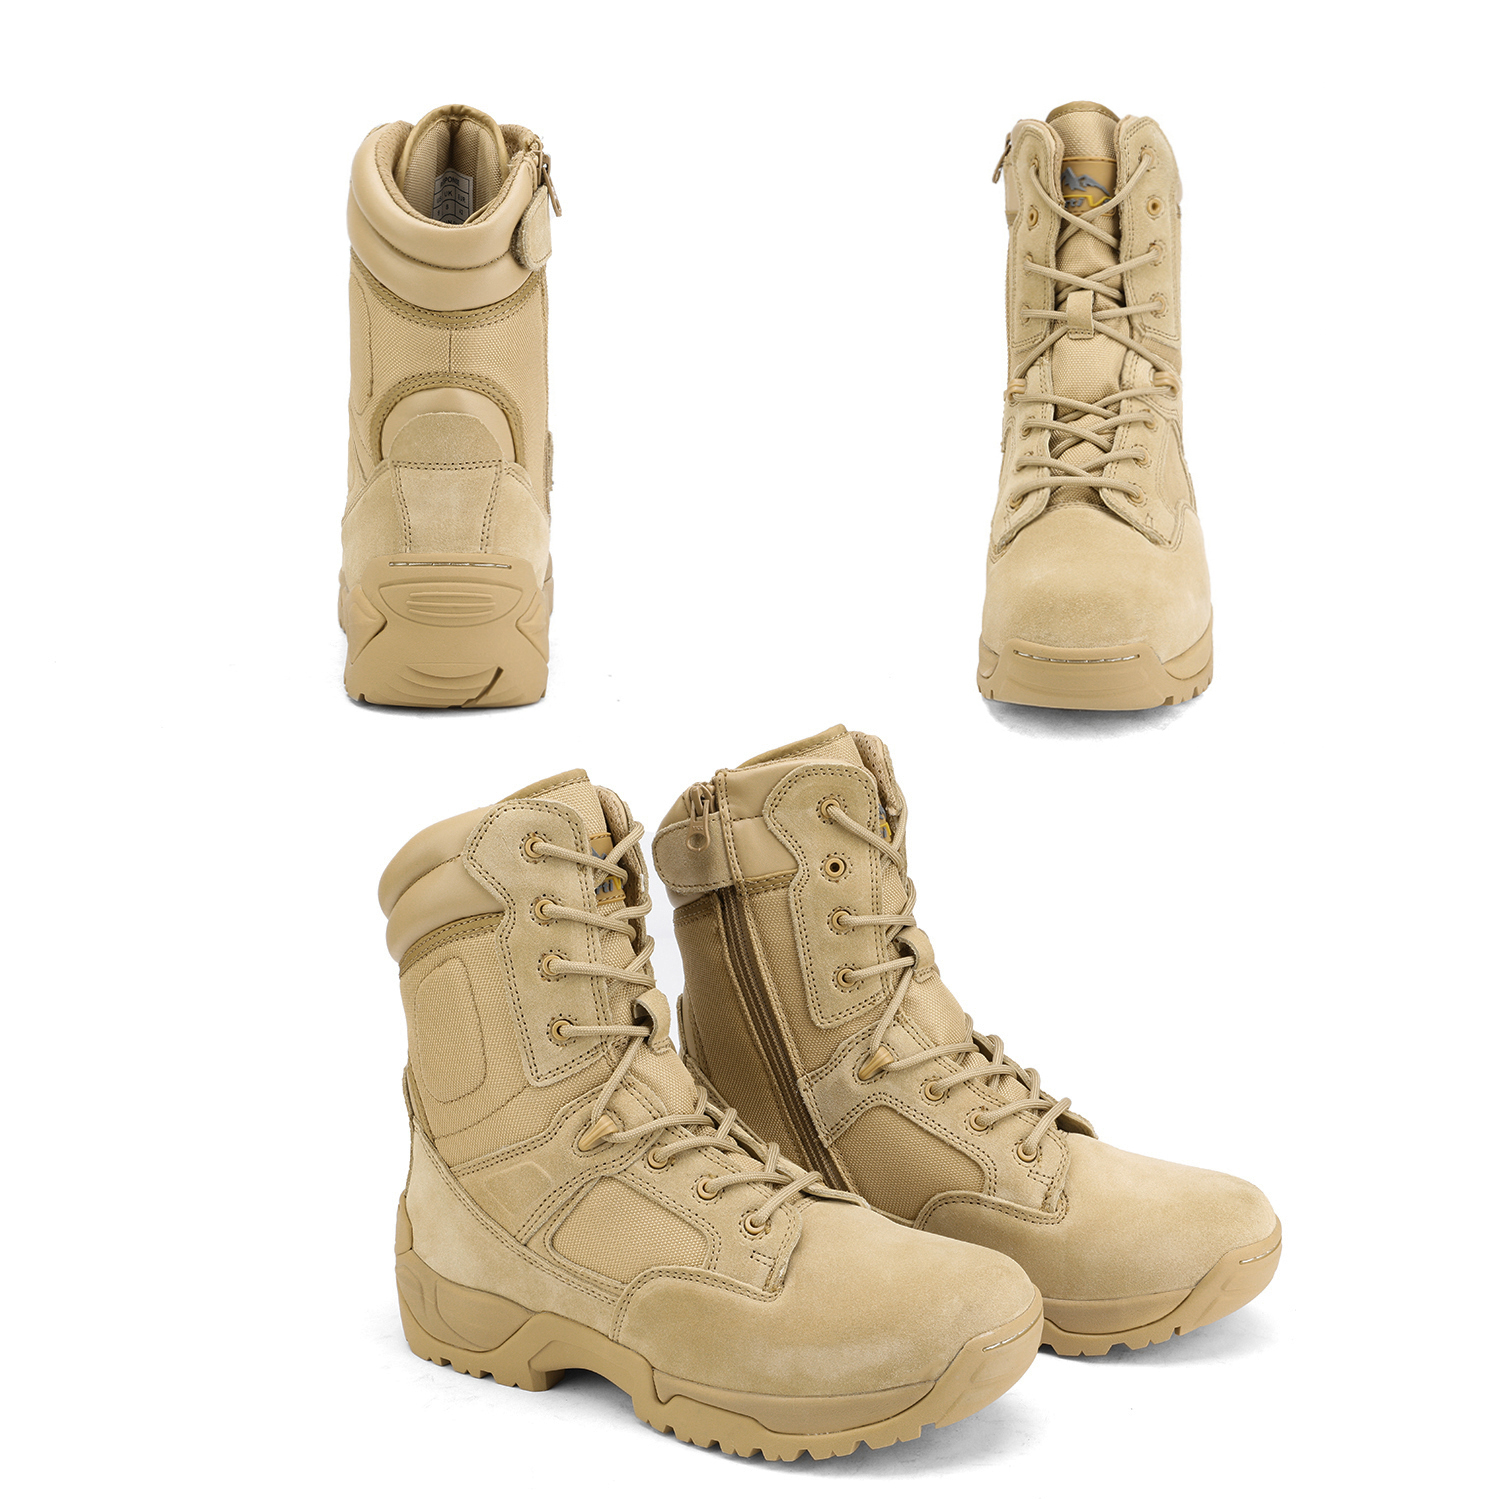 Men-039-s-Military-Tactical-Work-Boots-Hiking-Motorcycle-Combat-Bootie-New thumbnail 16